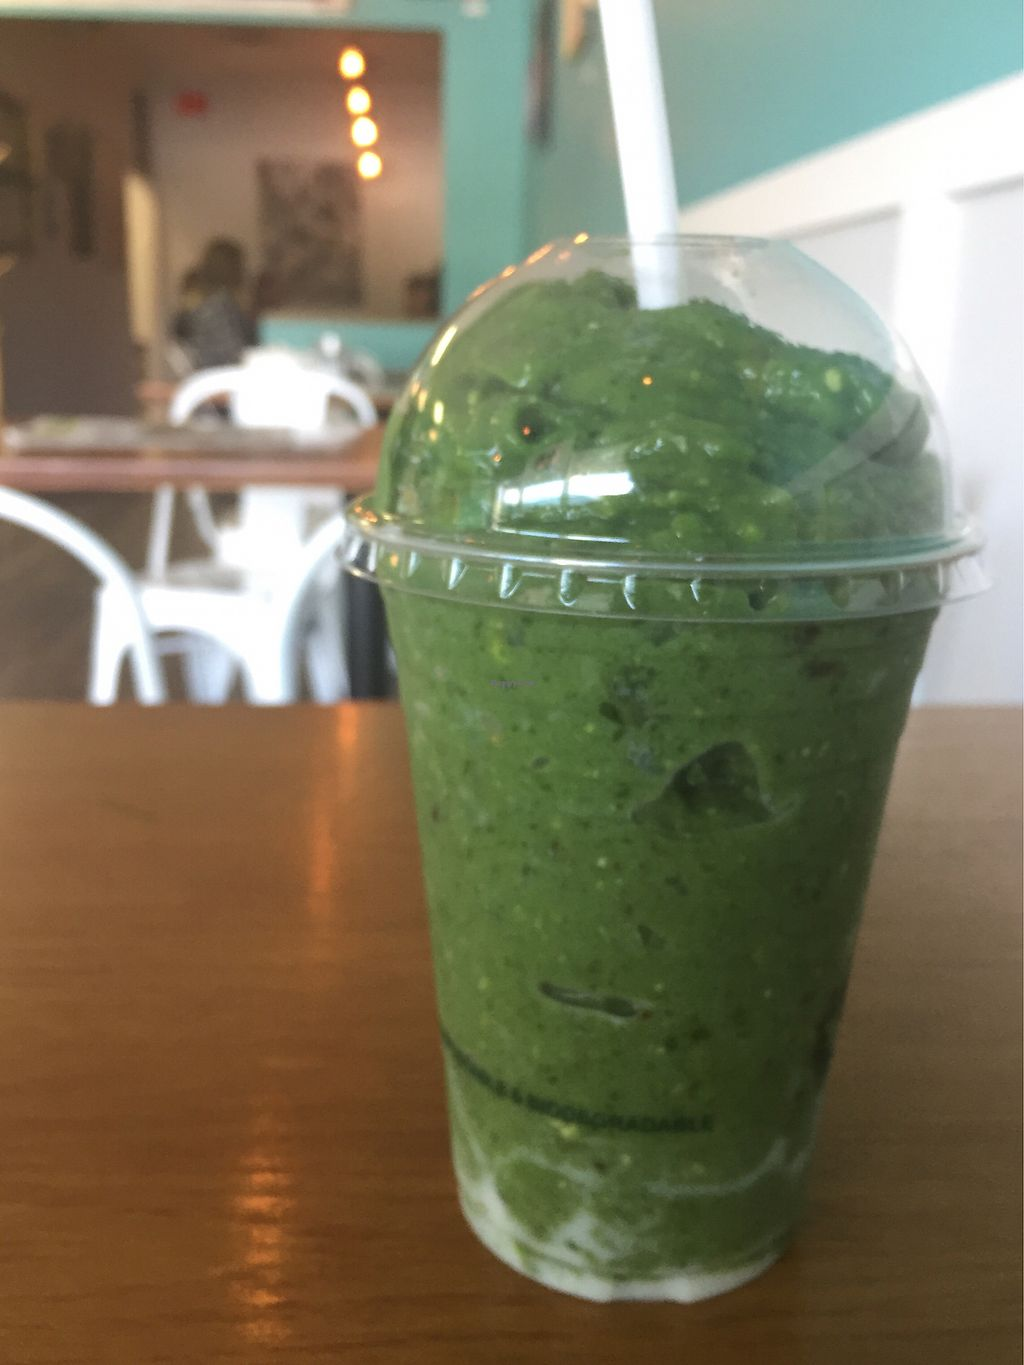 """Photo of Roots Modern Health Food  by <a href=""""/members/profile/ChelseaAprilNovak"""">ChelseaAprilNovak</a> <br/>Green Protein Smoothie <br/> September 23, 2017  - <a href='/contact/abuse/image/79375/307523'>Report</a>"""